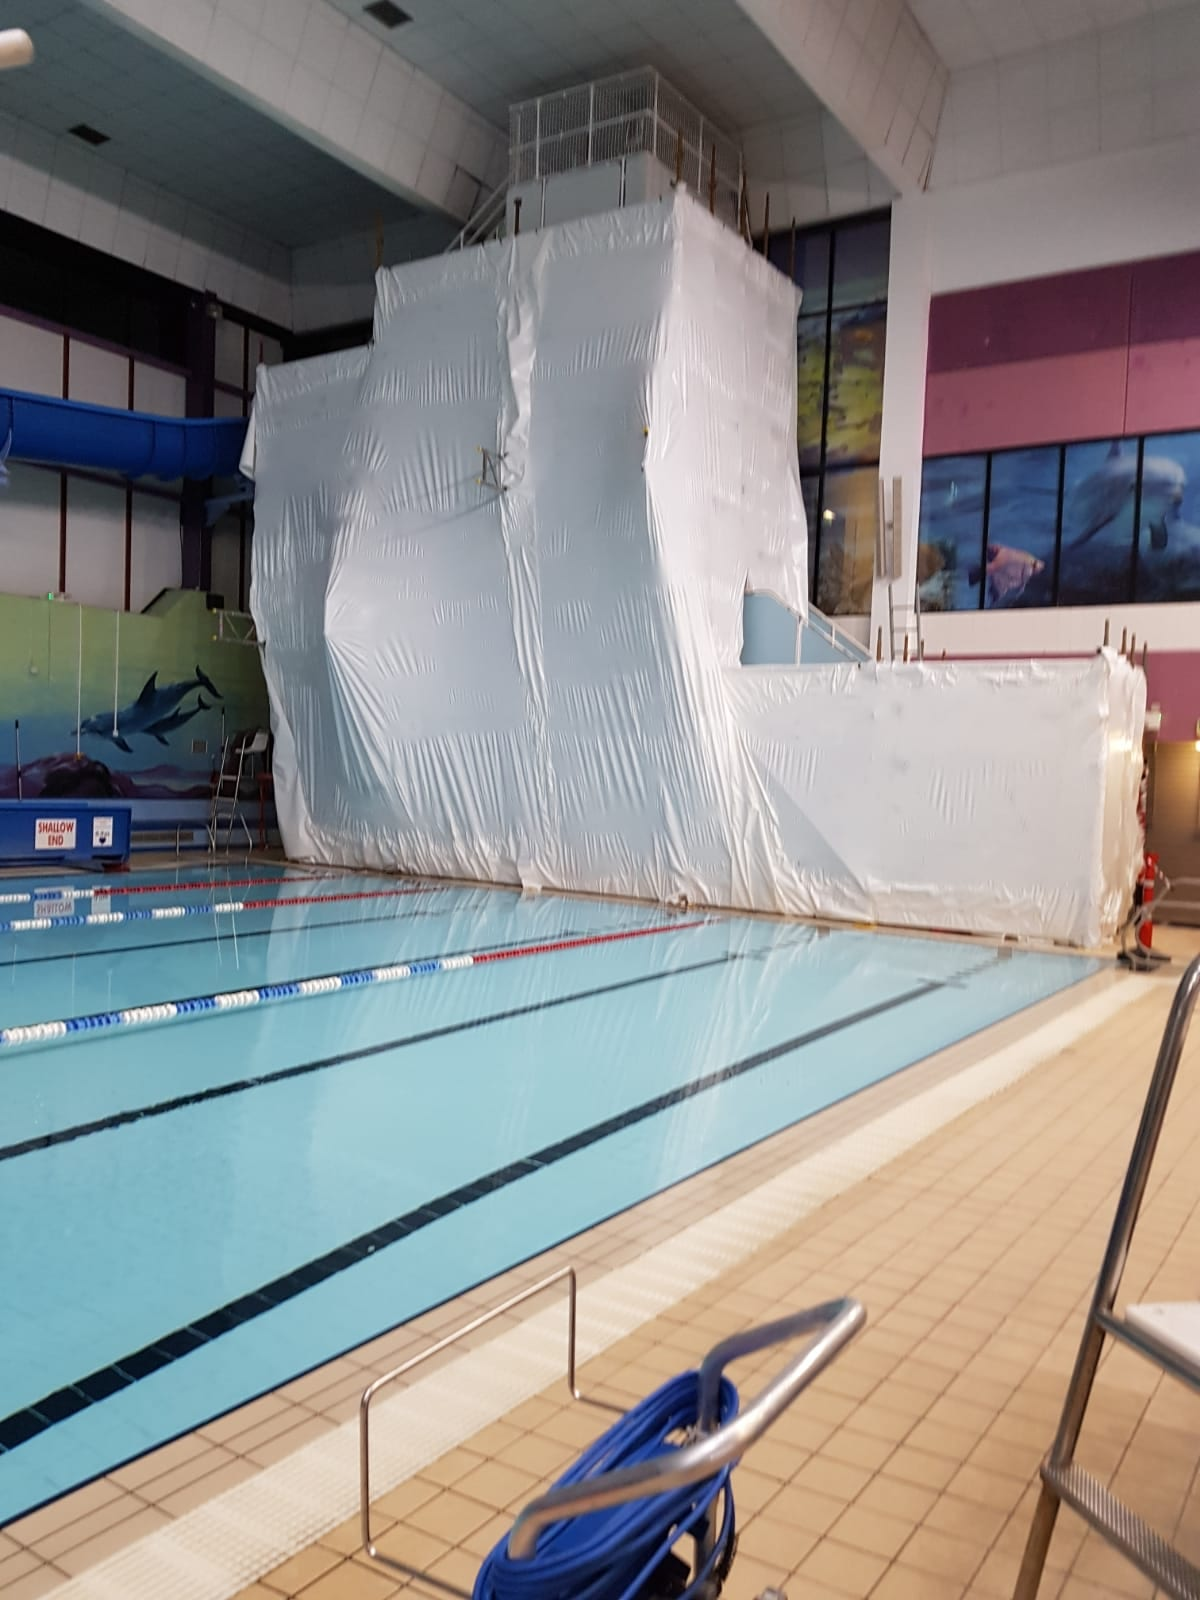 lagan valley leisure centre Featured Image